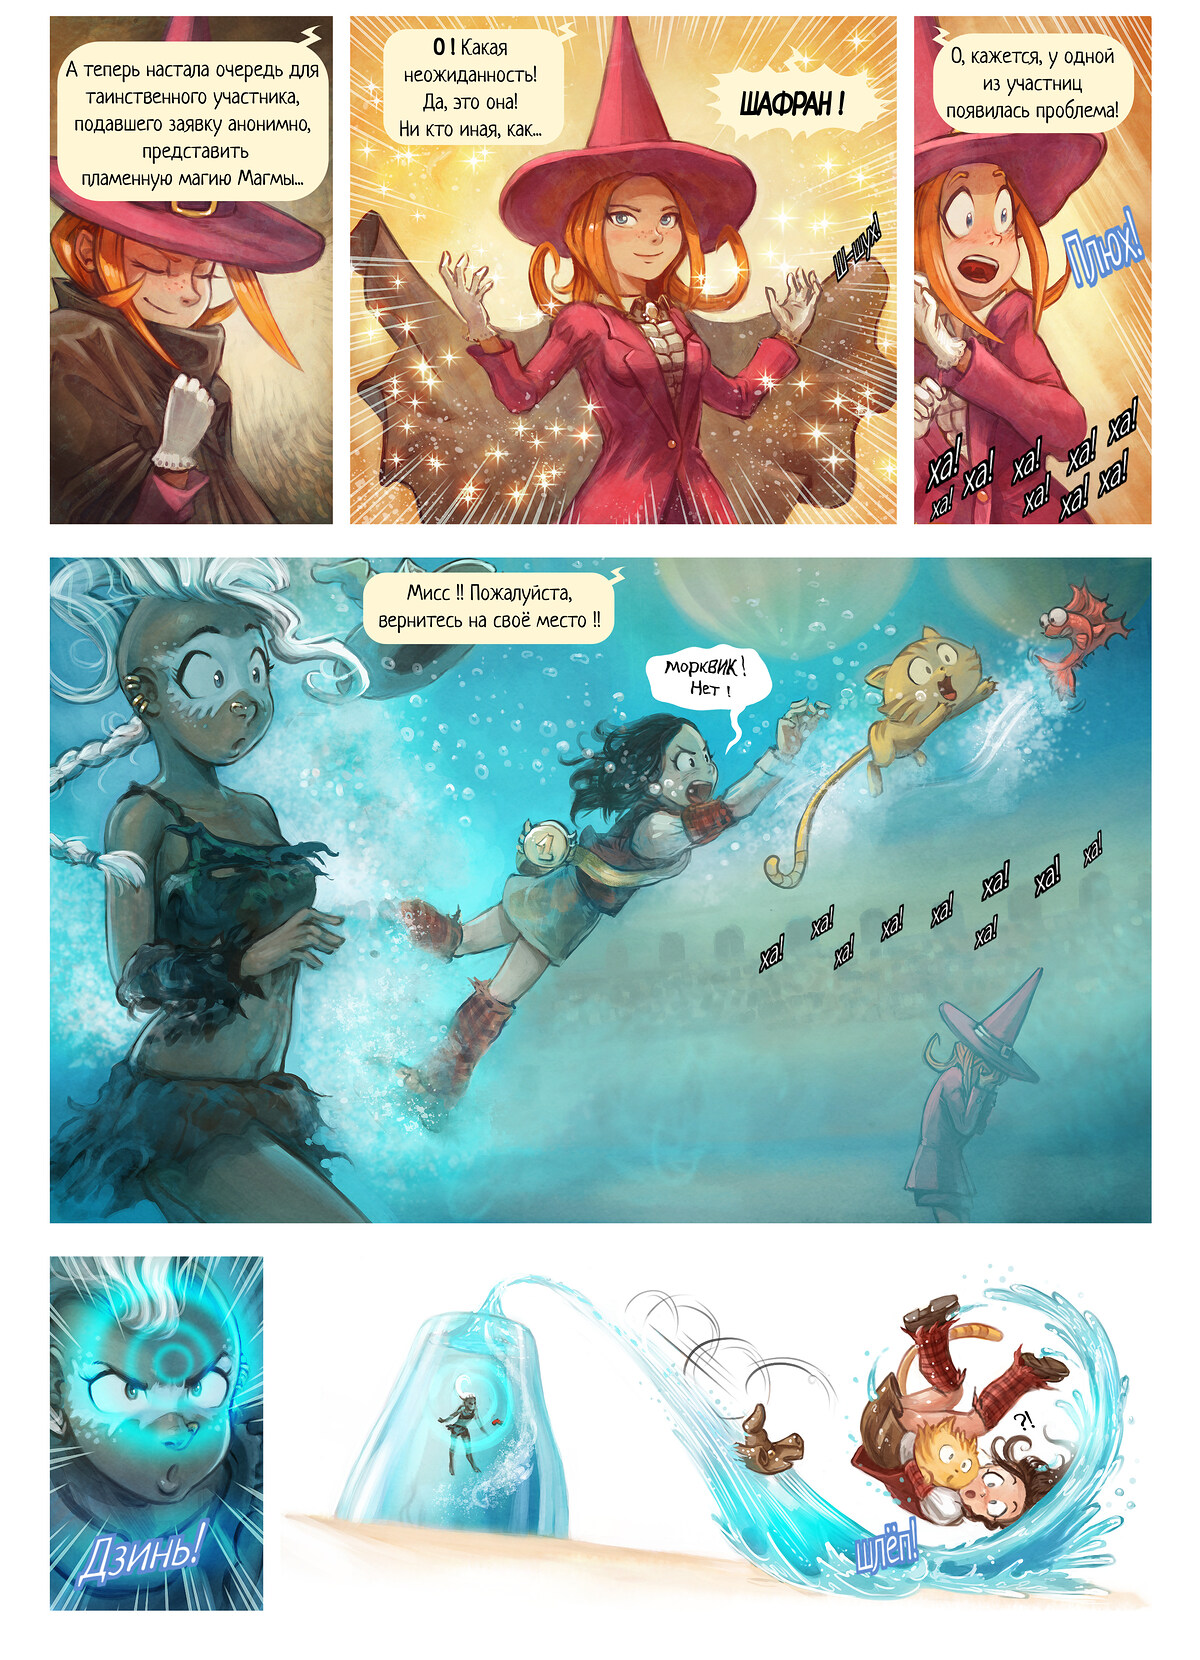 A webcomic page of Pepper&Carrot, эпизод 21 [ru], стр. 6